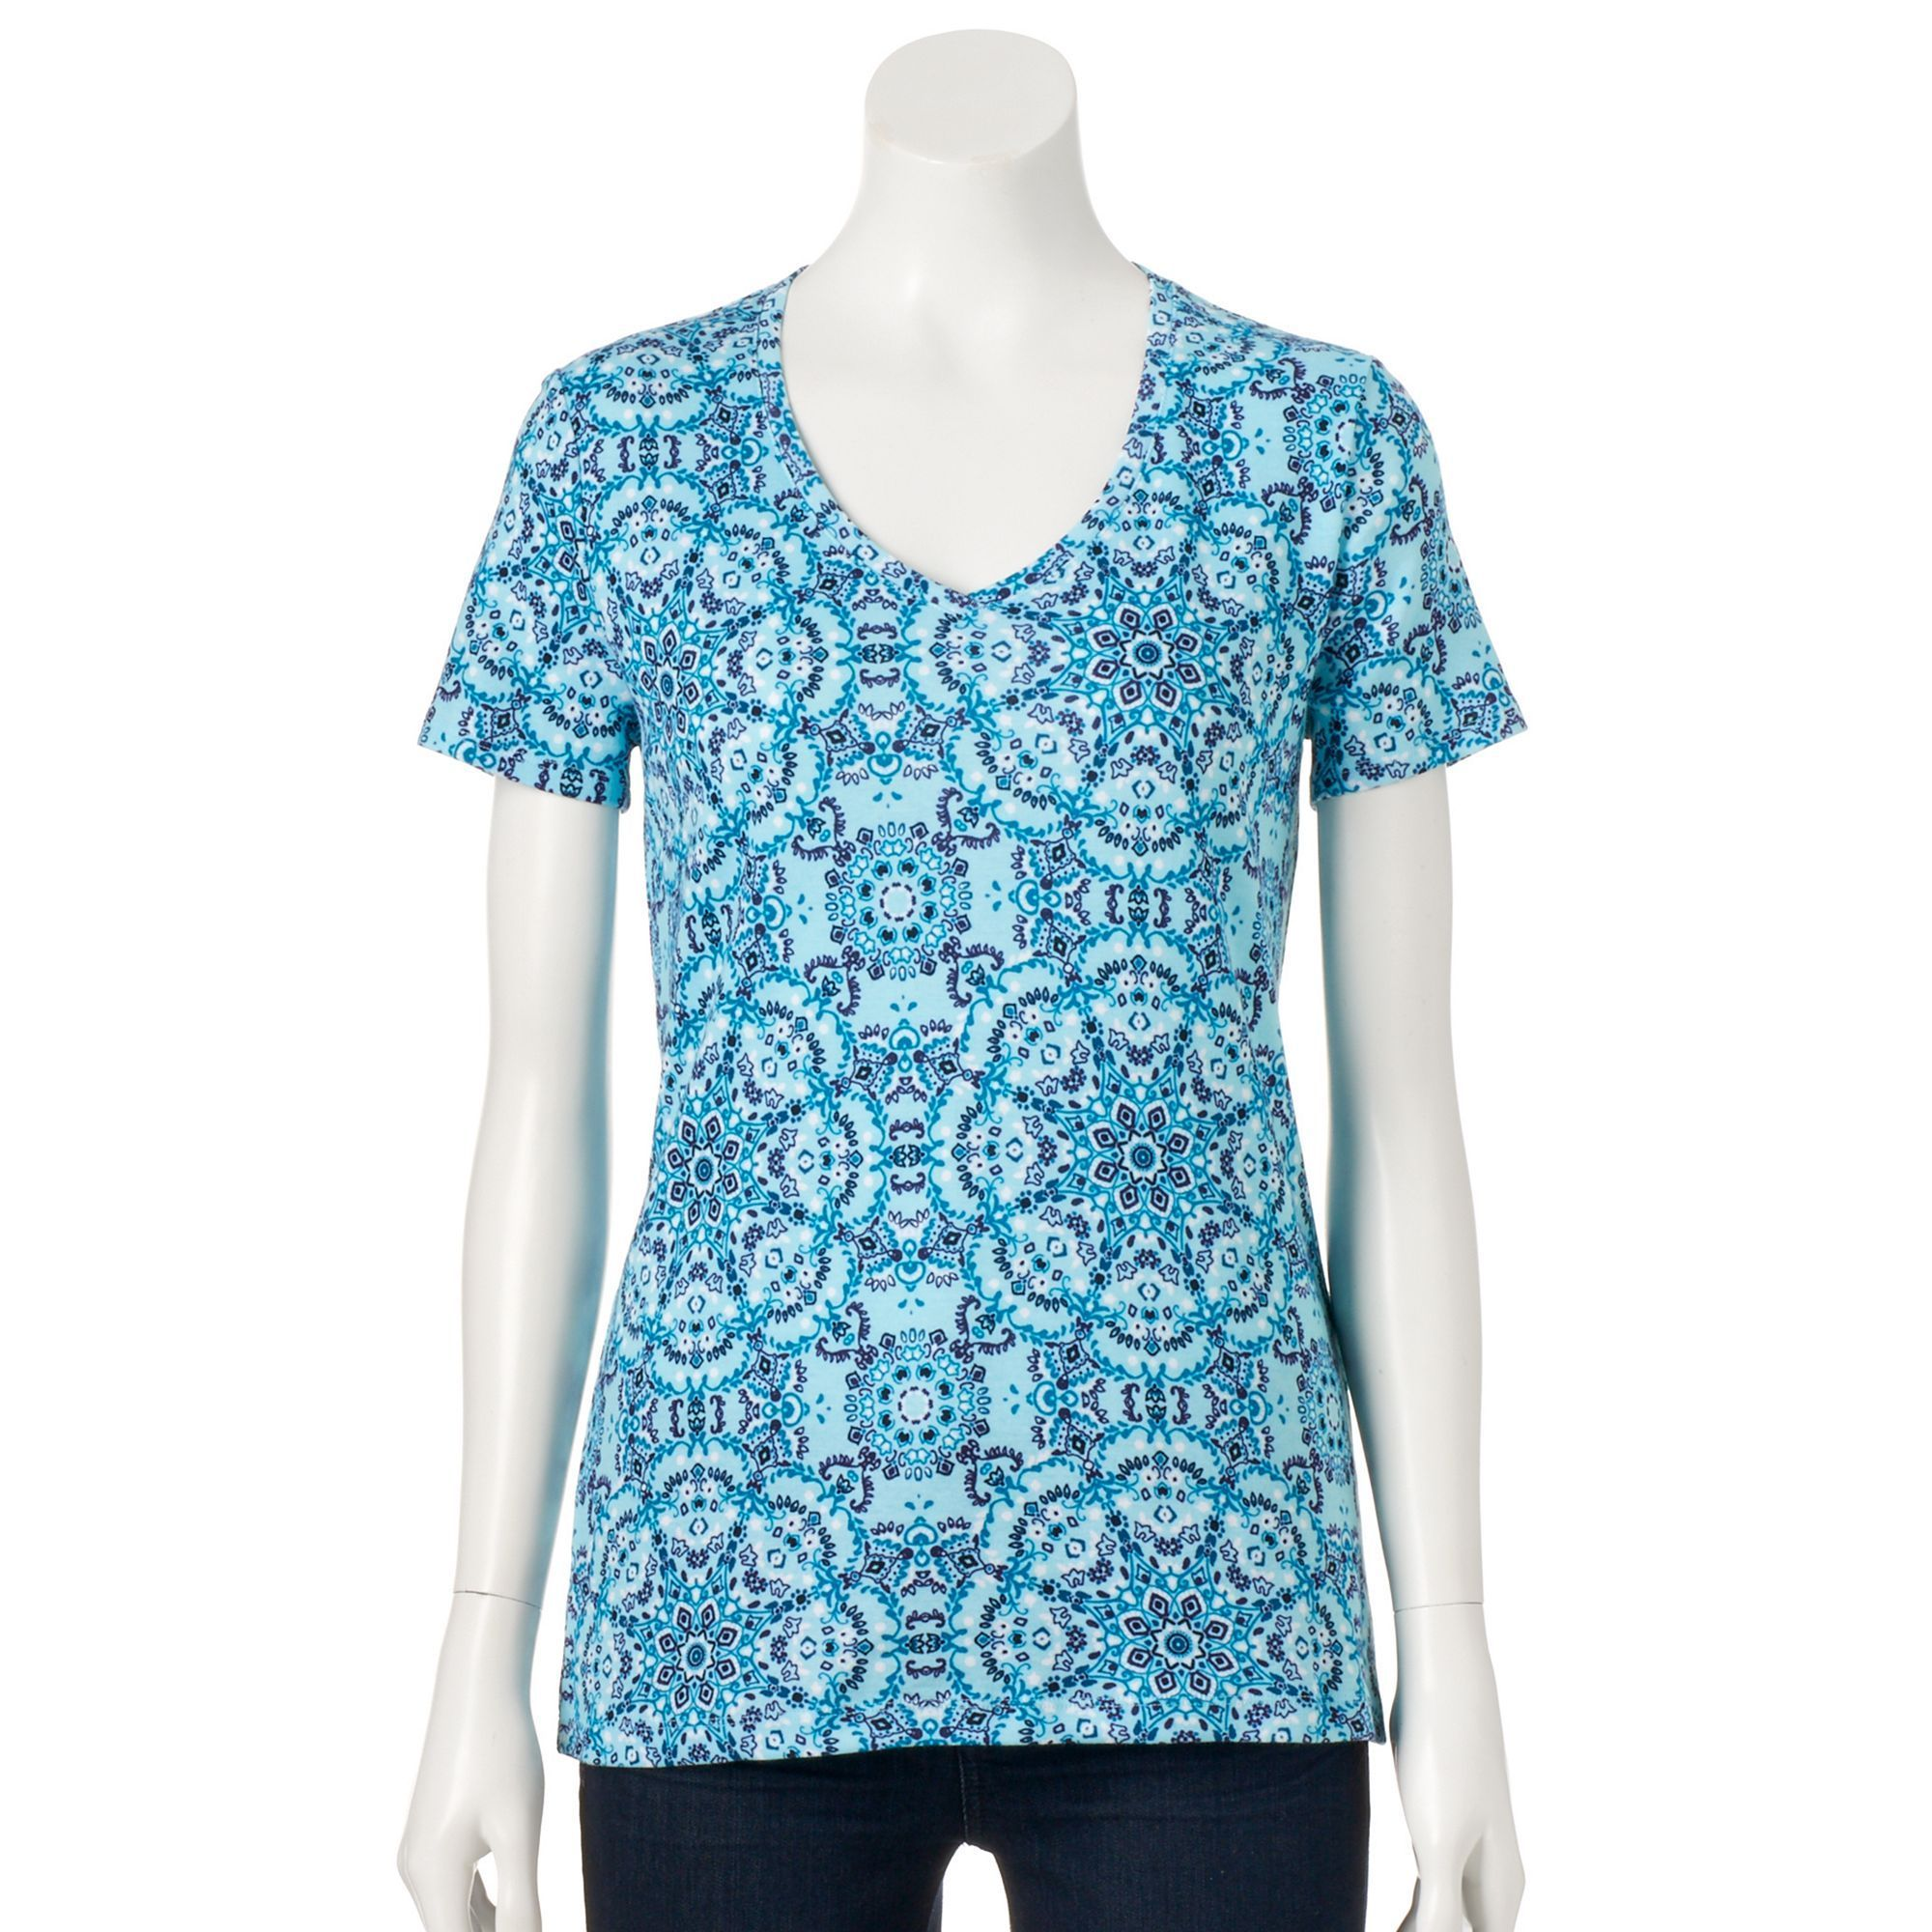 Women's Croft & Barrow® Essential V-Neck Tee, Size: Medium, Turquoise/Blue (Turq/Aqua)